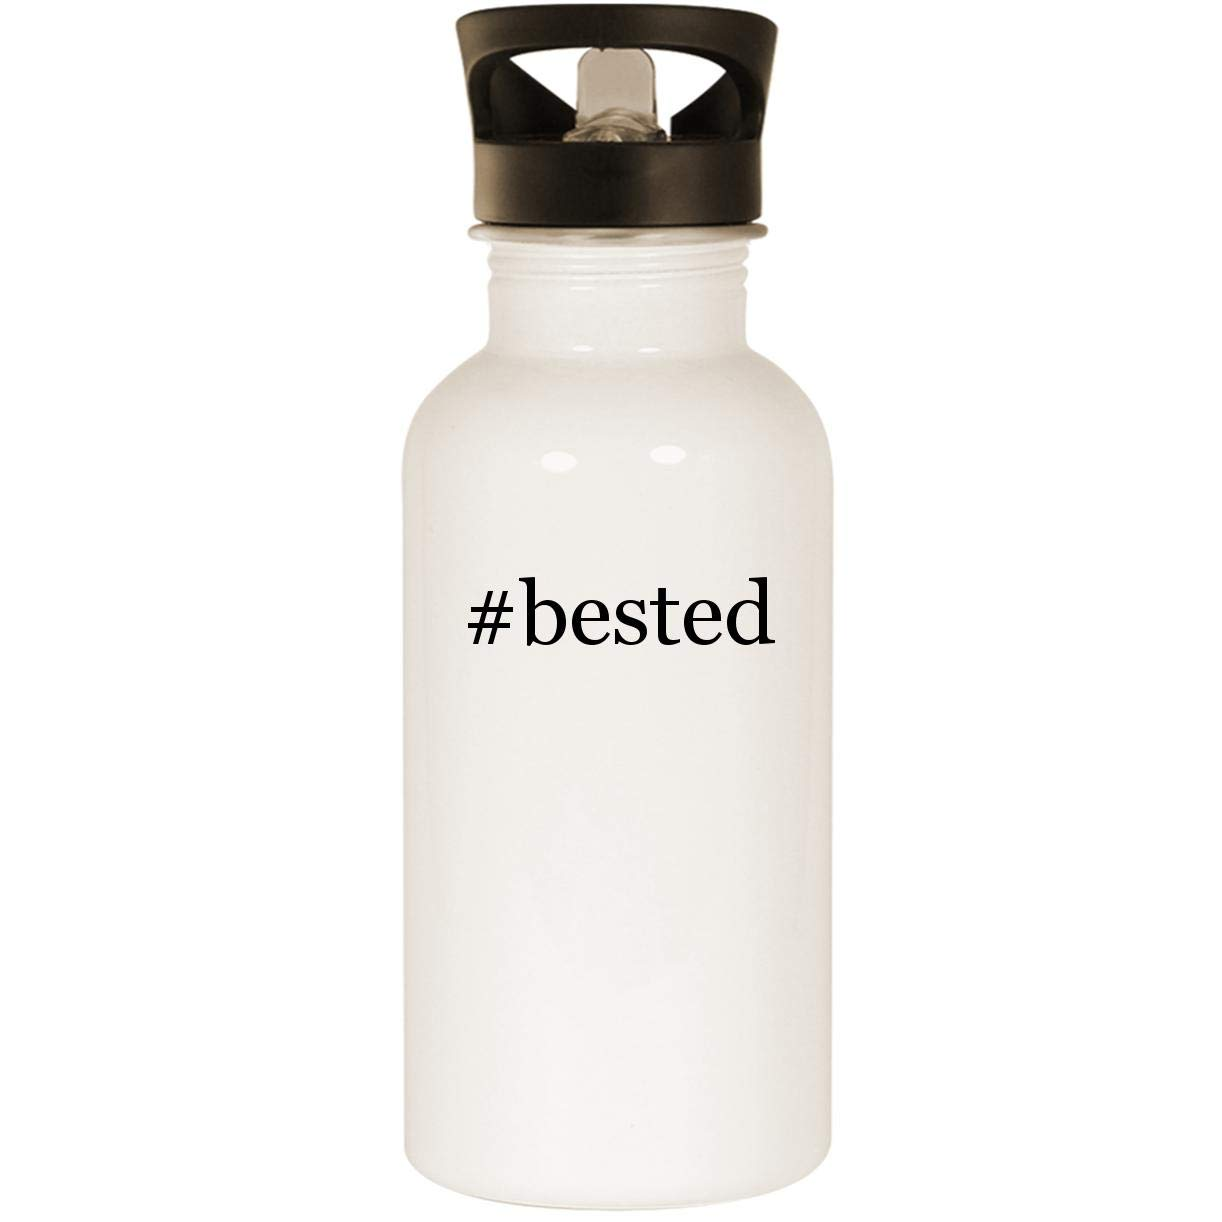 #bested - Stainless Steel 20oz Road Ready Water Bottle, White